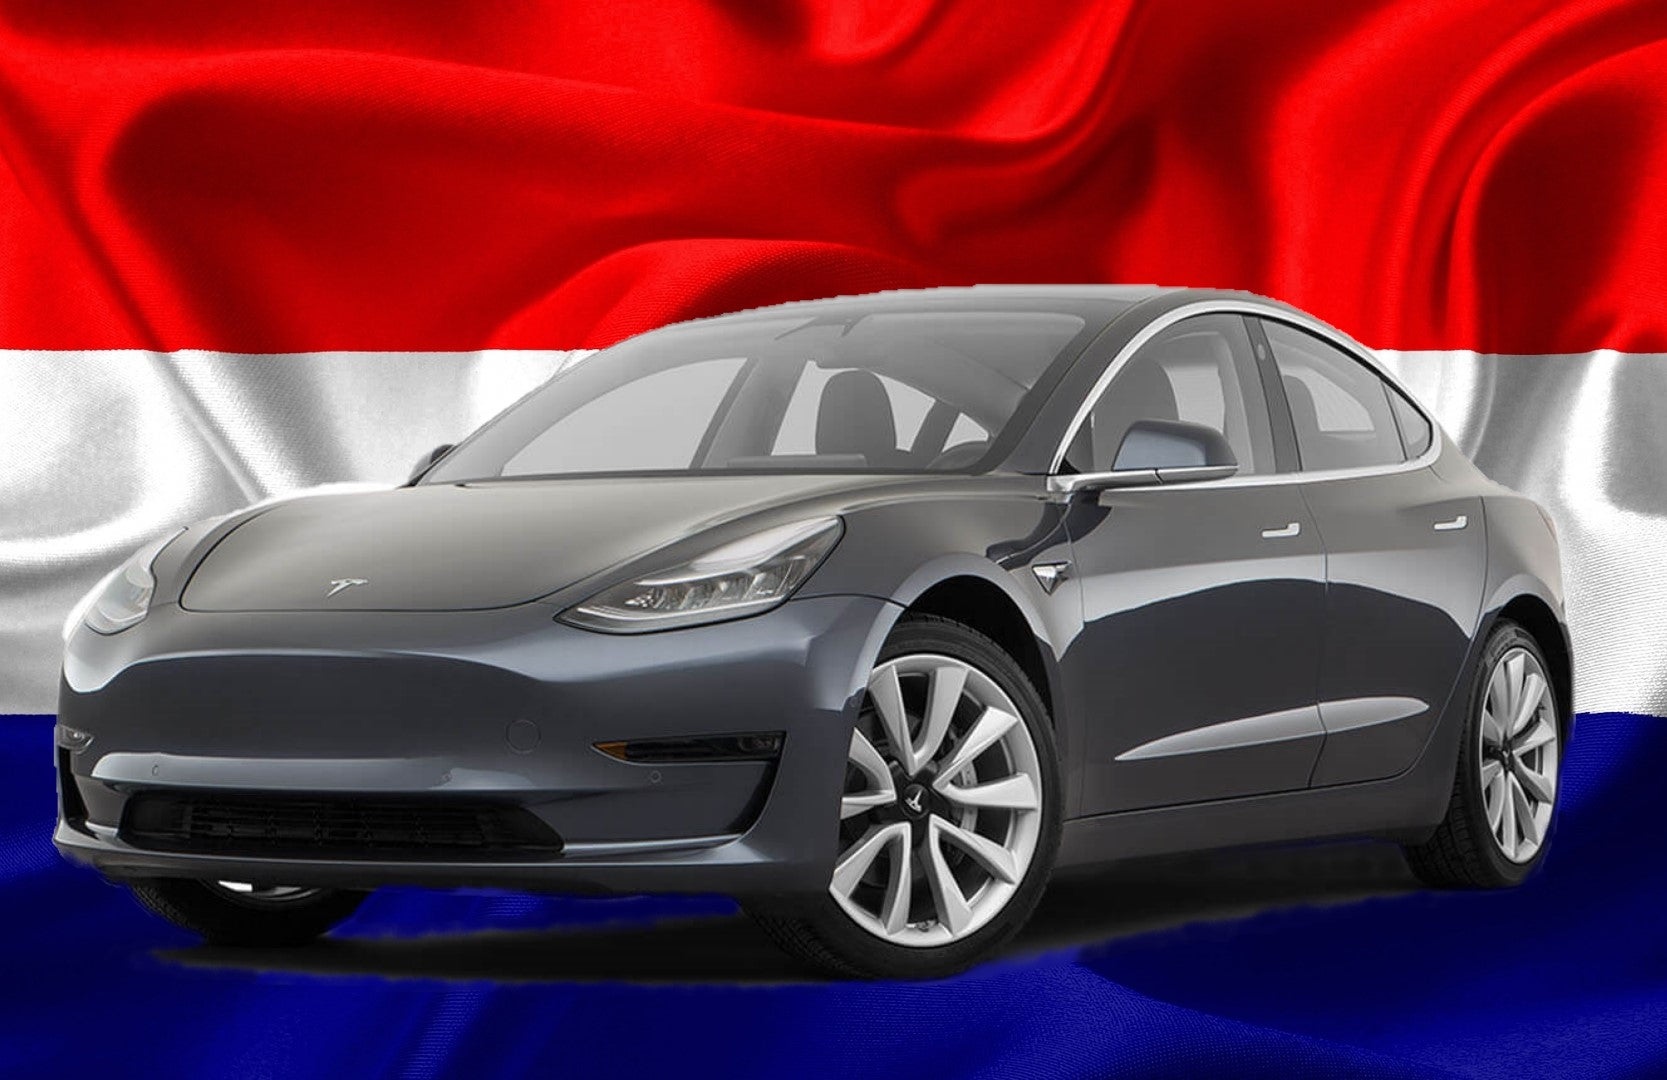 Tesla Dominated Dutch EV Market With Close To 30K Model 3 Registered in 2019